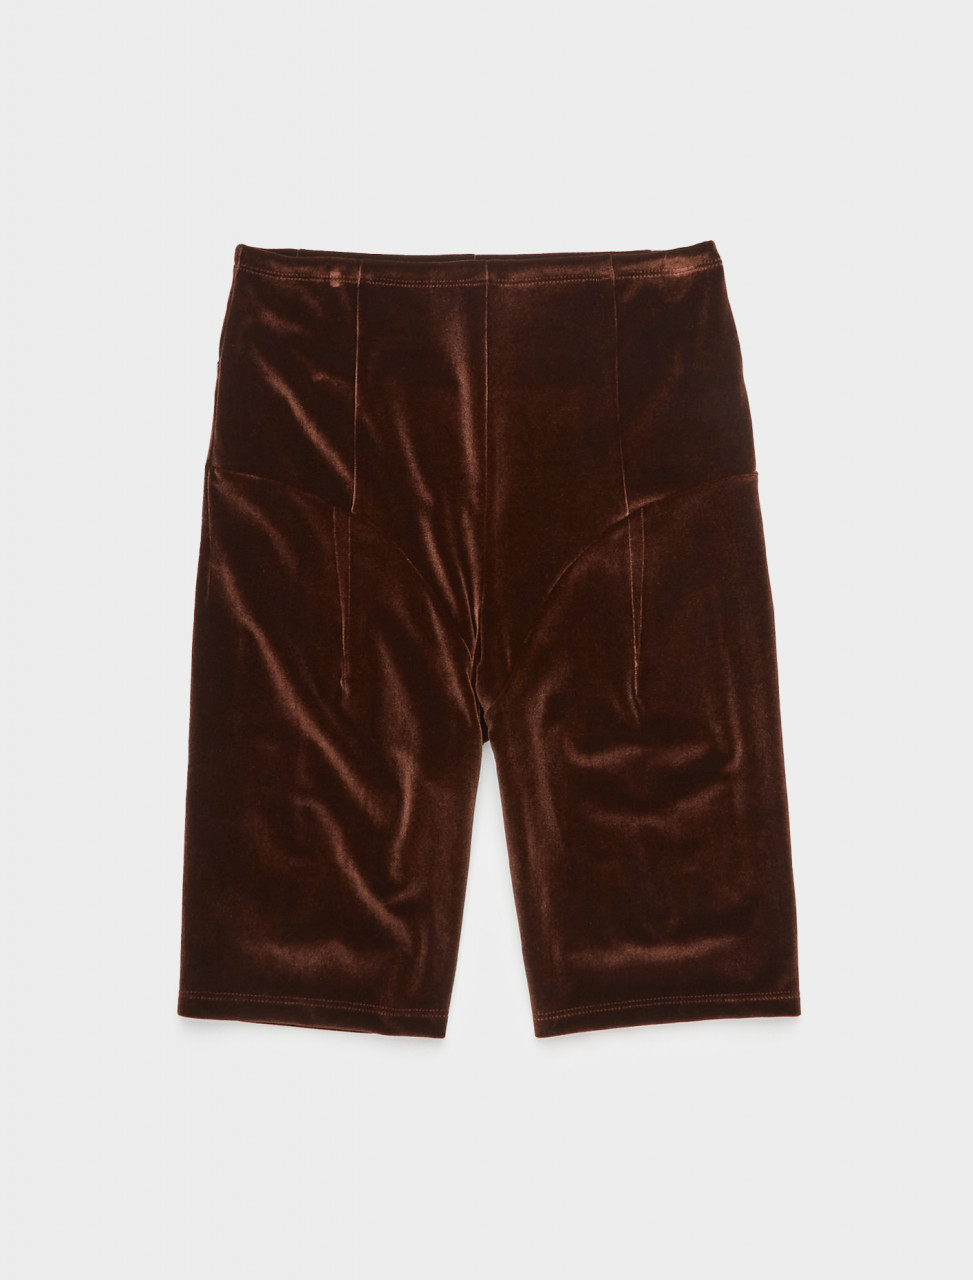 340-CAPS20SL19 SUPRIYA LELE VELVET JODPHUR CYCLING SHORTS CHOCOLATE